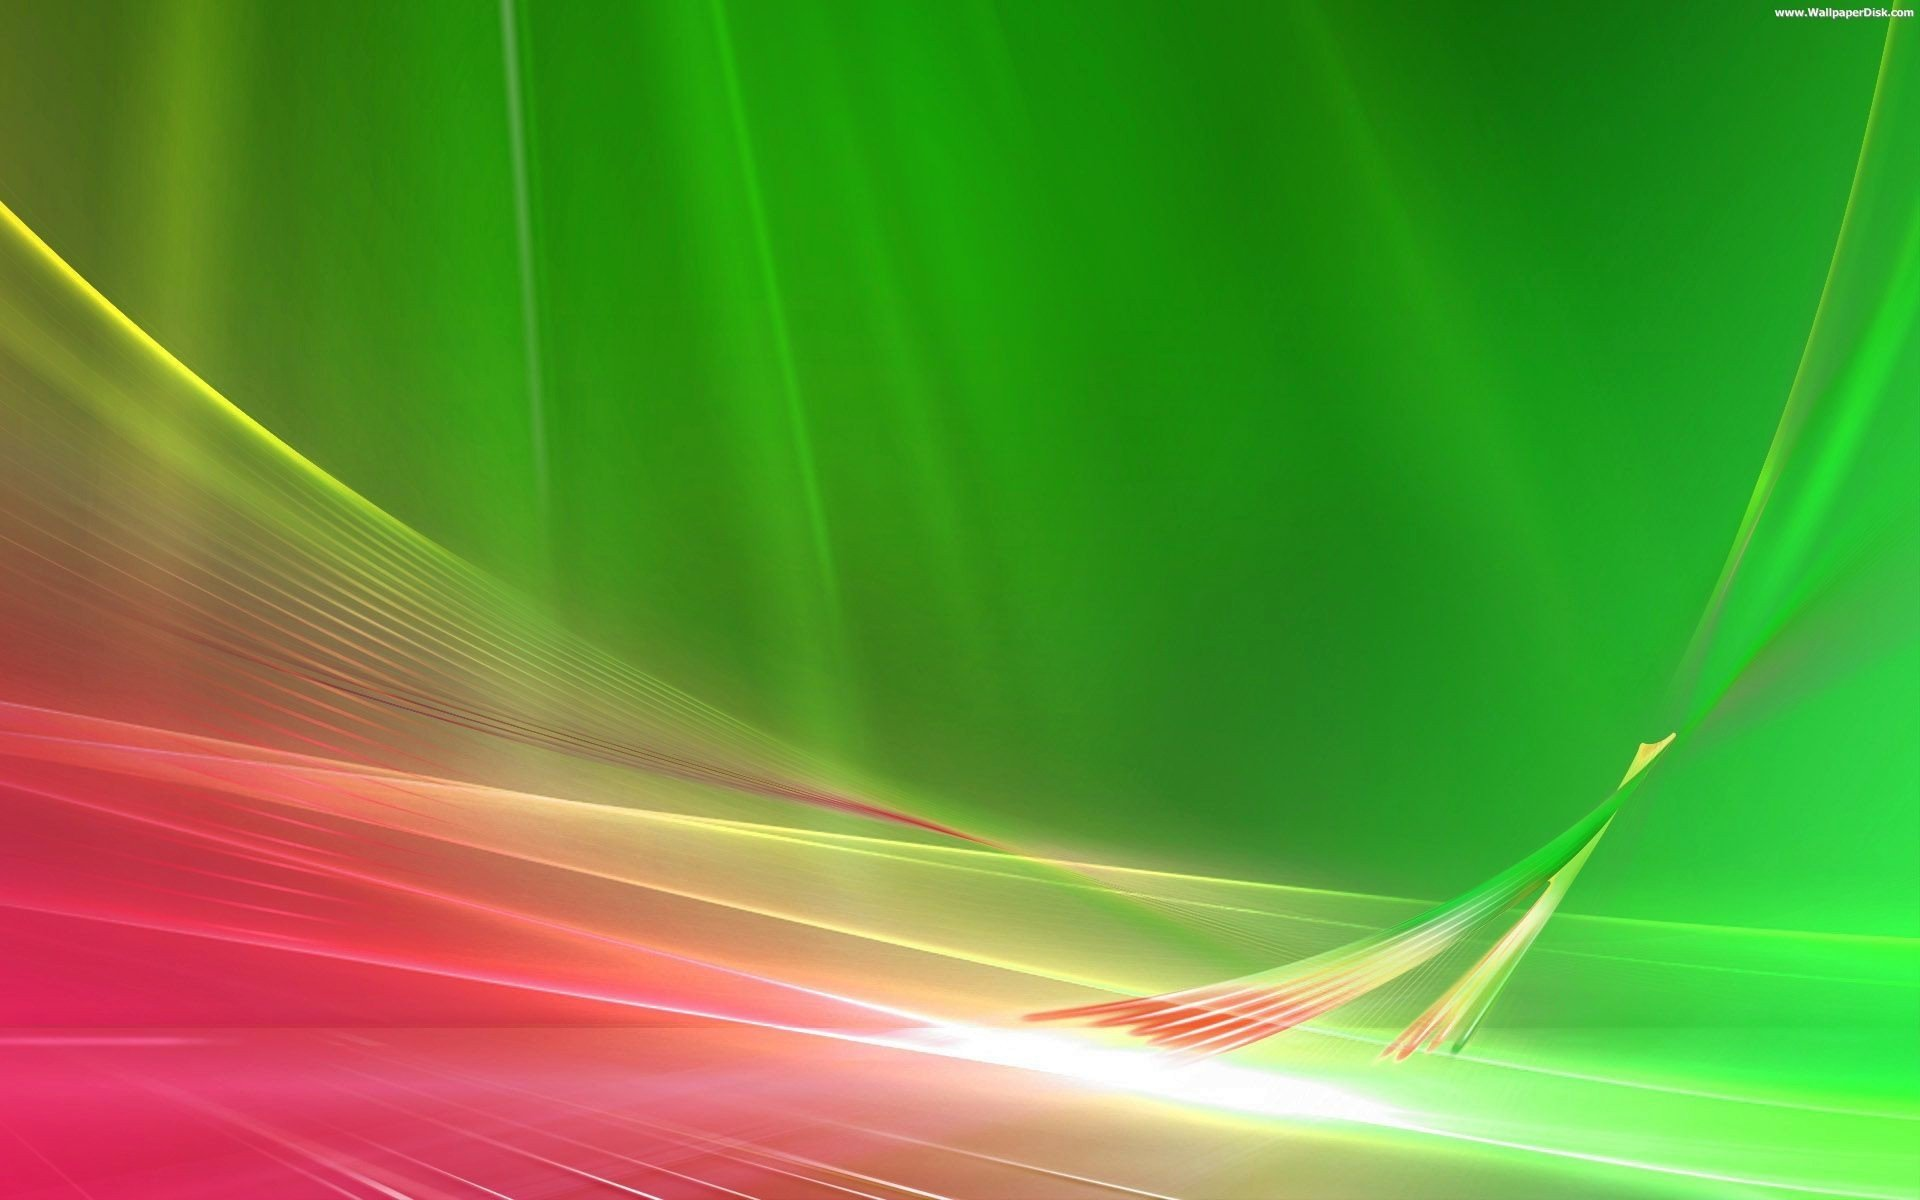 green and red wallpapers 29 wallpapers � adorable wallpapers